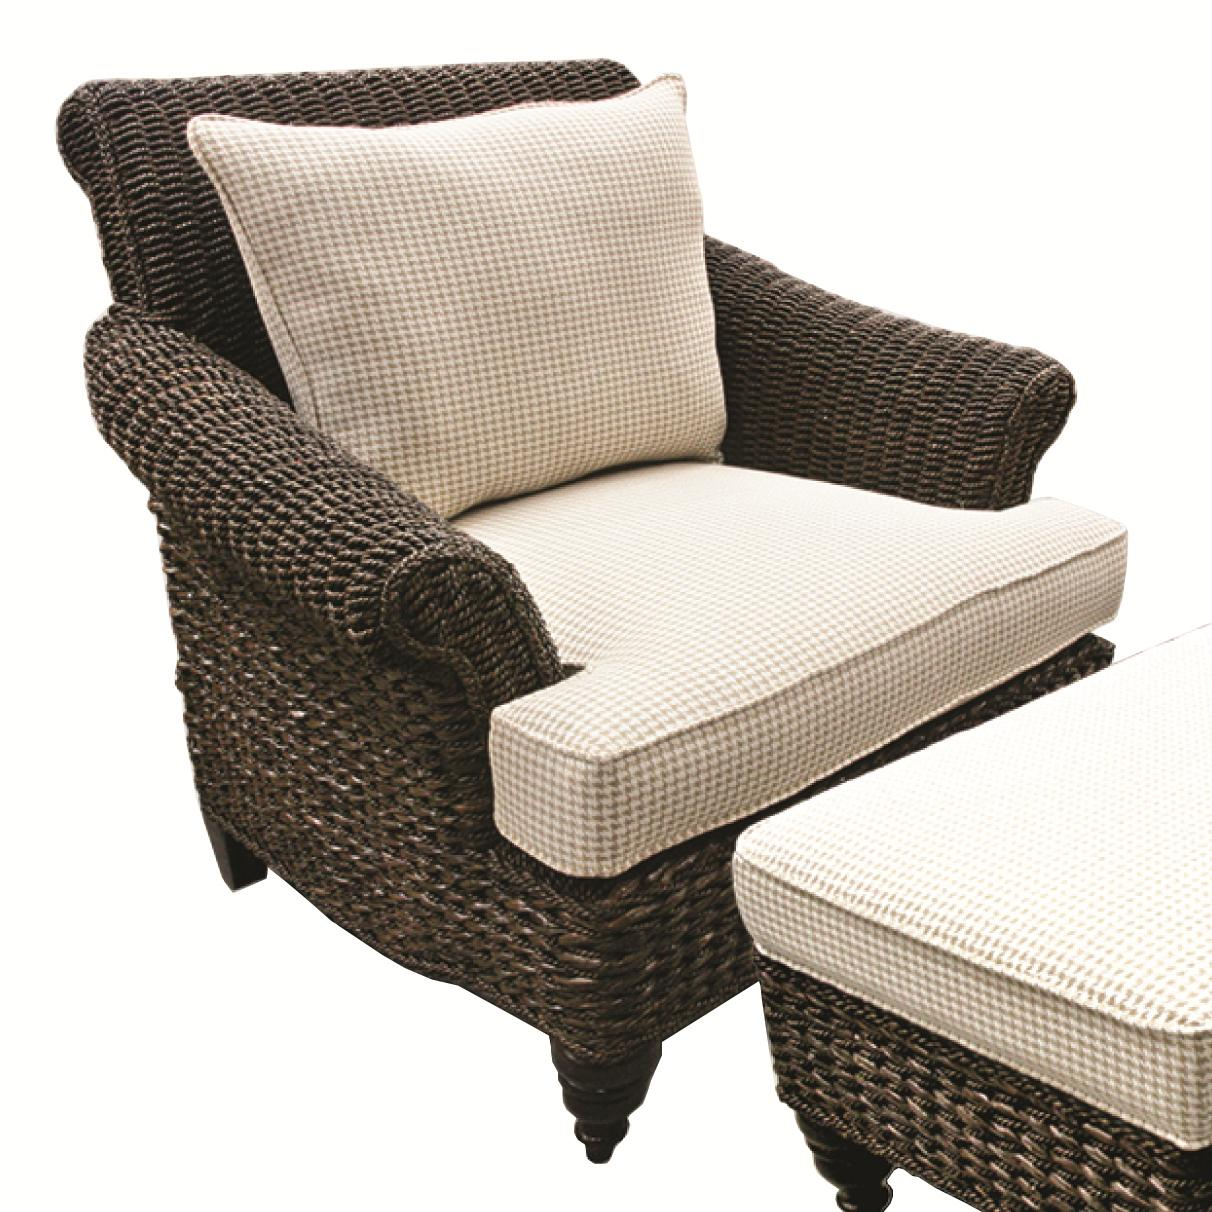 capris furniture chairs and ottomans wicker chair with upholstered cushions howell furniture. Black Bedroom Furniture Sets. Home Design Ideas